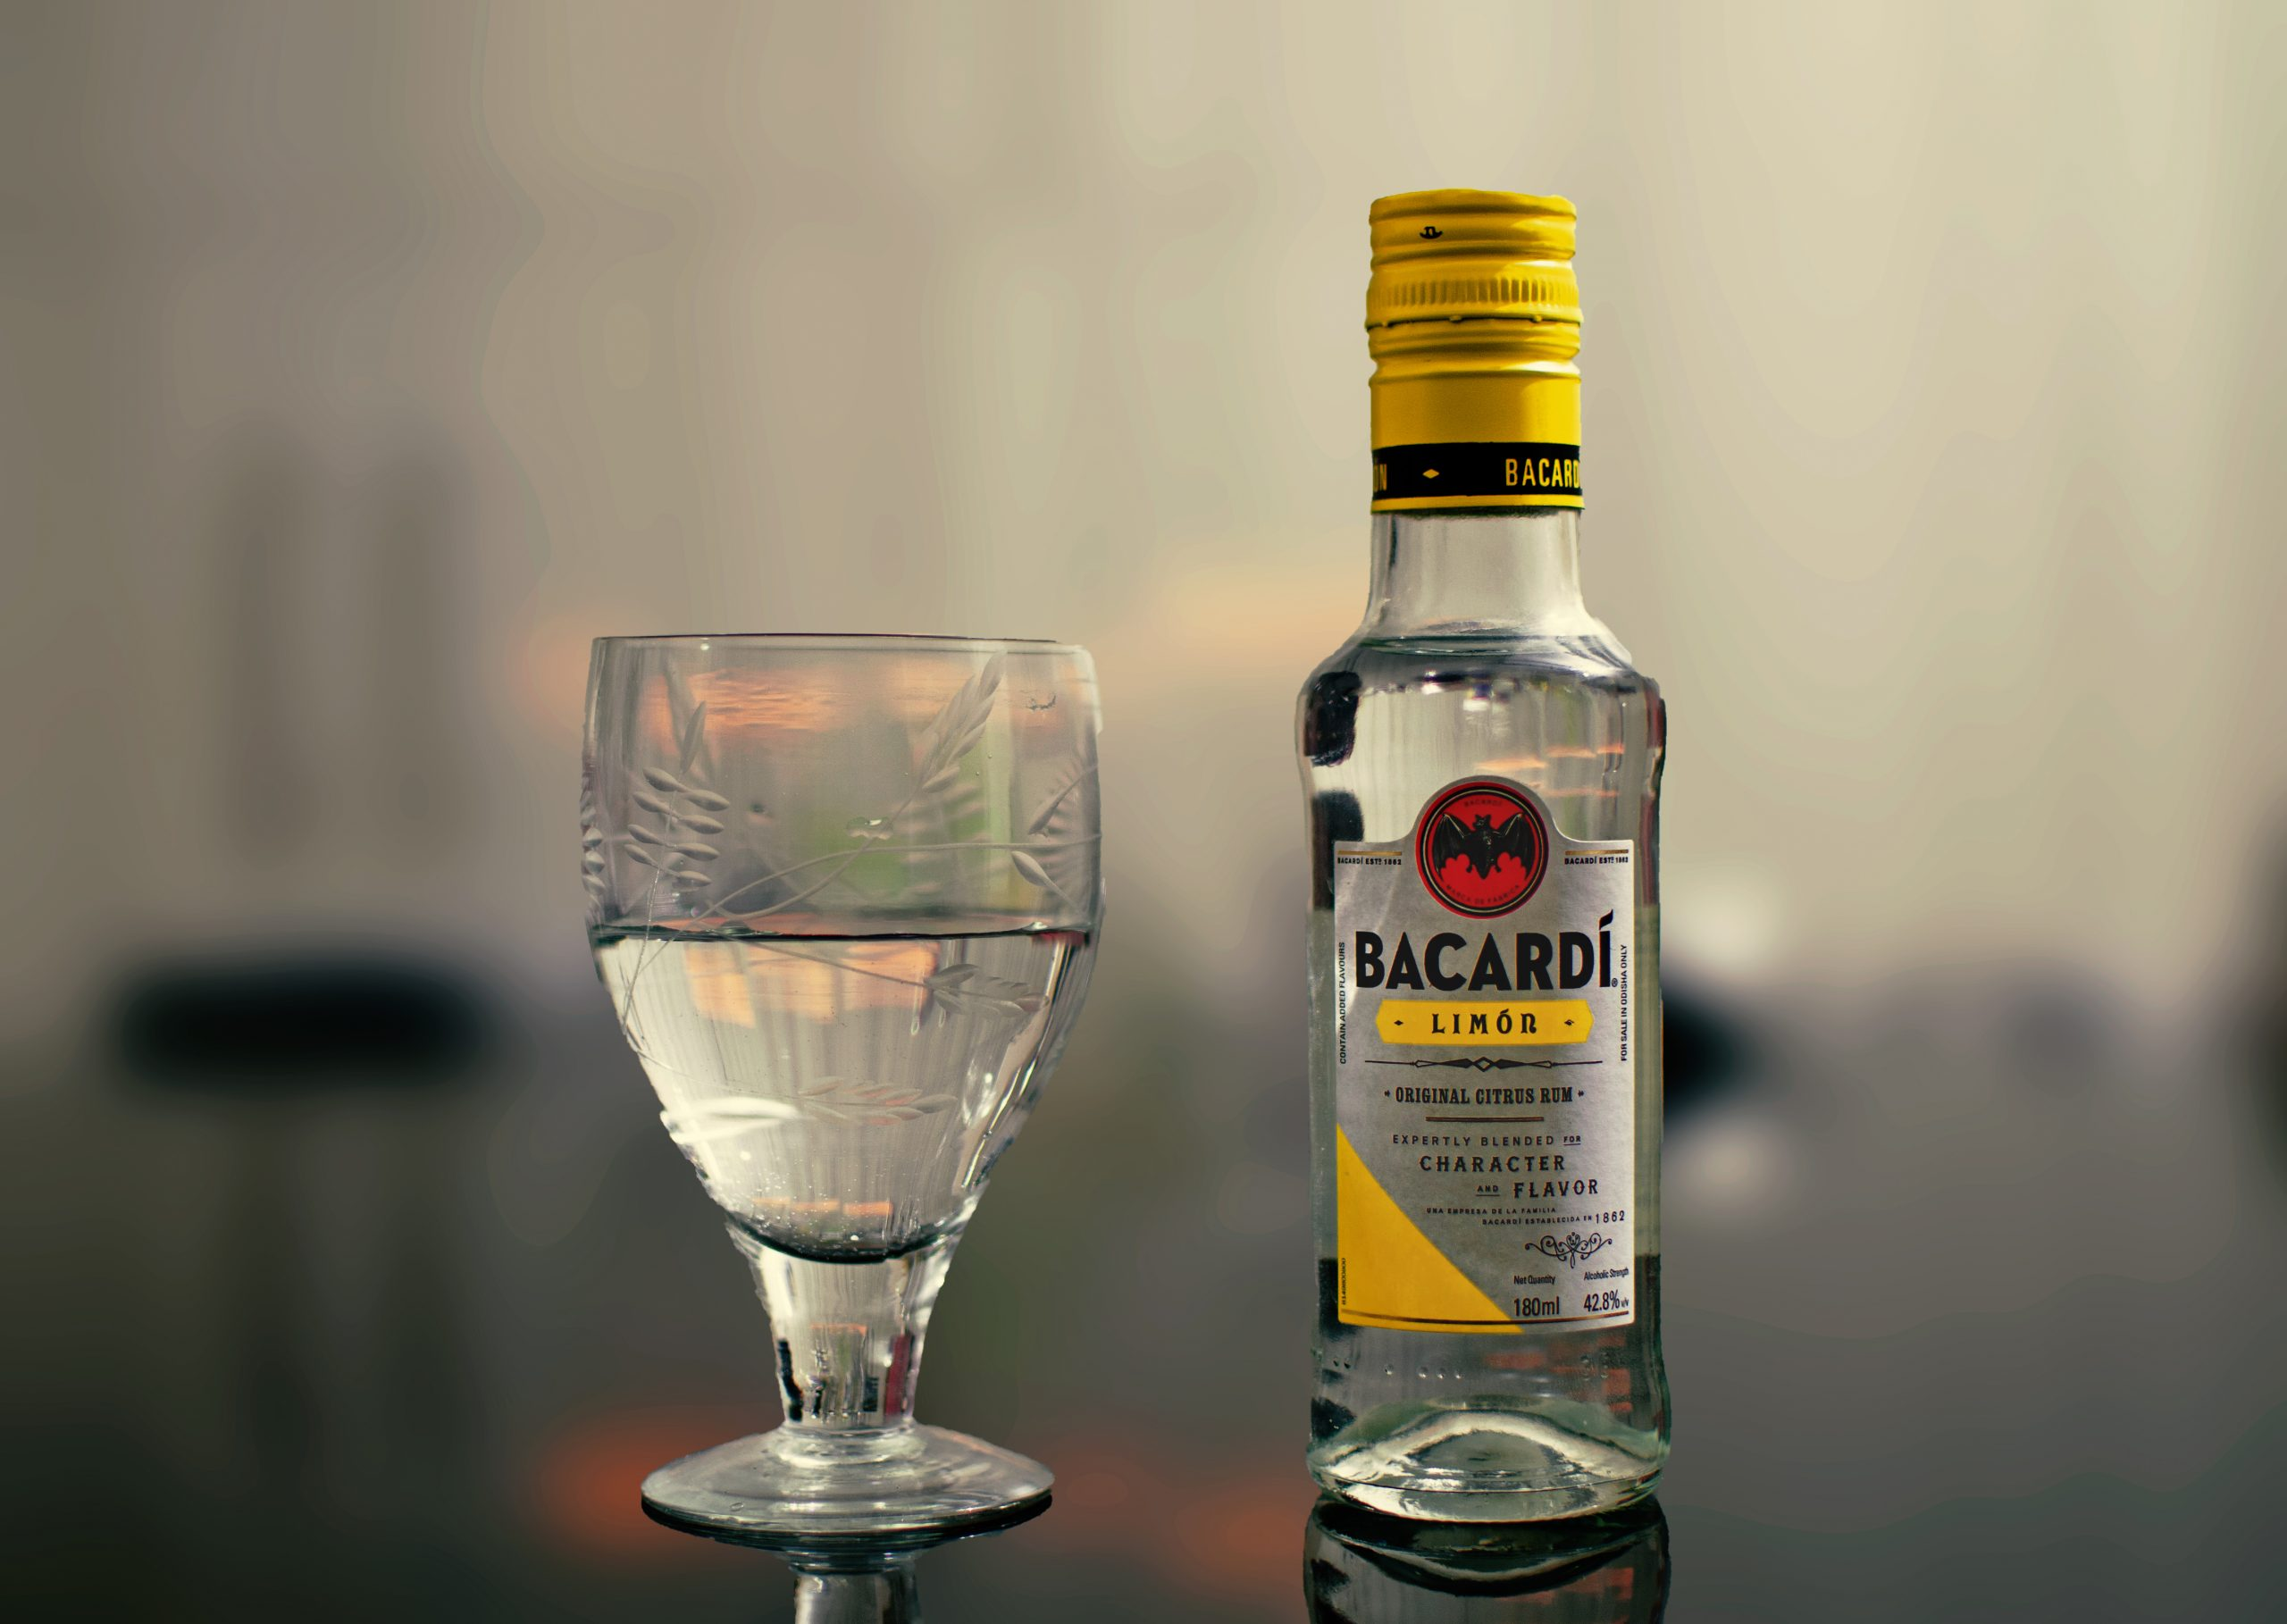 Snap of a Bacardi lemon